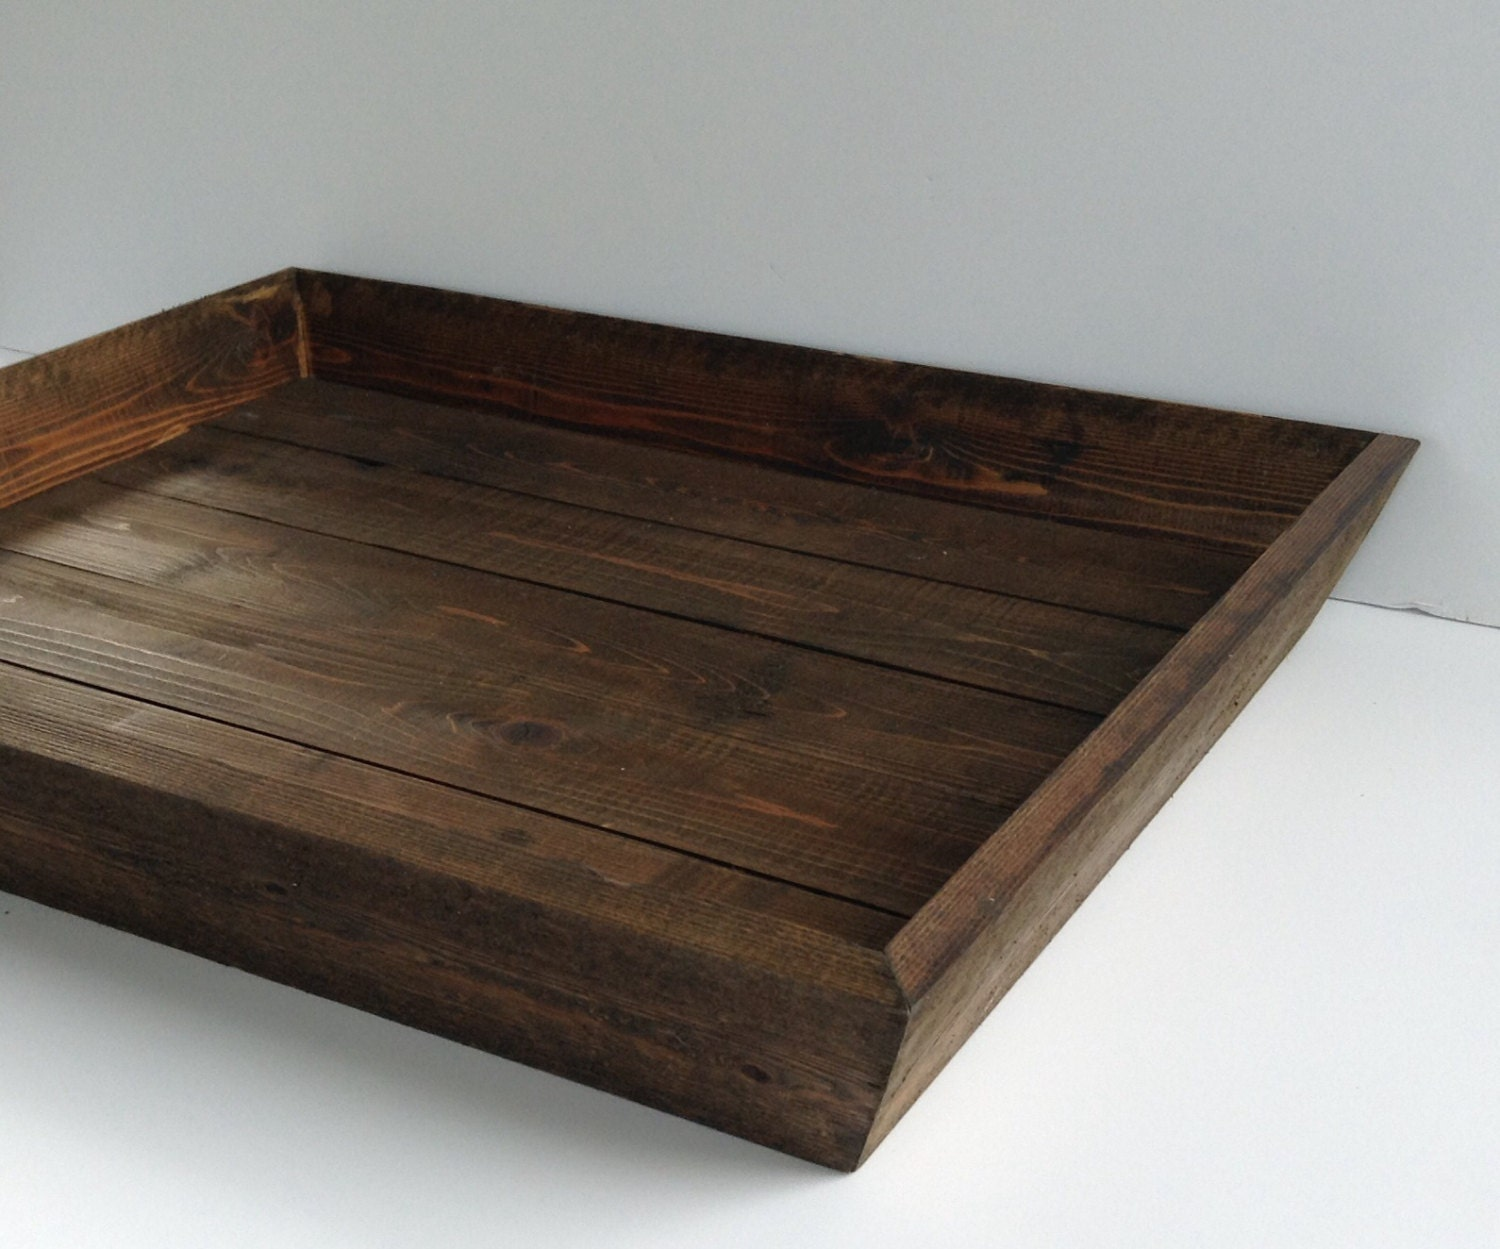 Dark stained wood tray rustic wood box ottoman tray wooden Ottoman coffee table trays